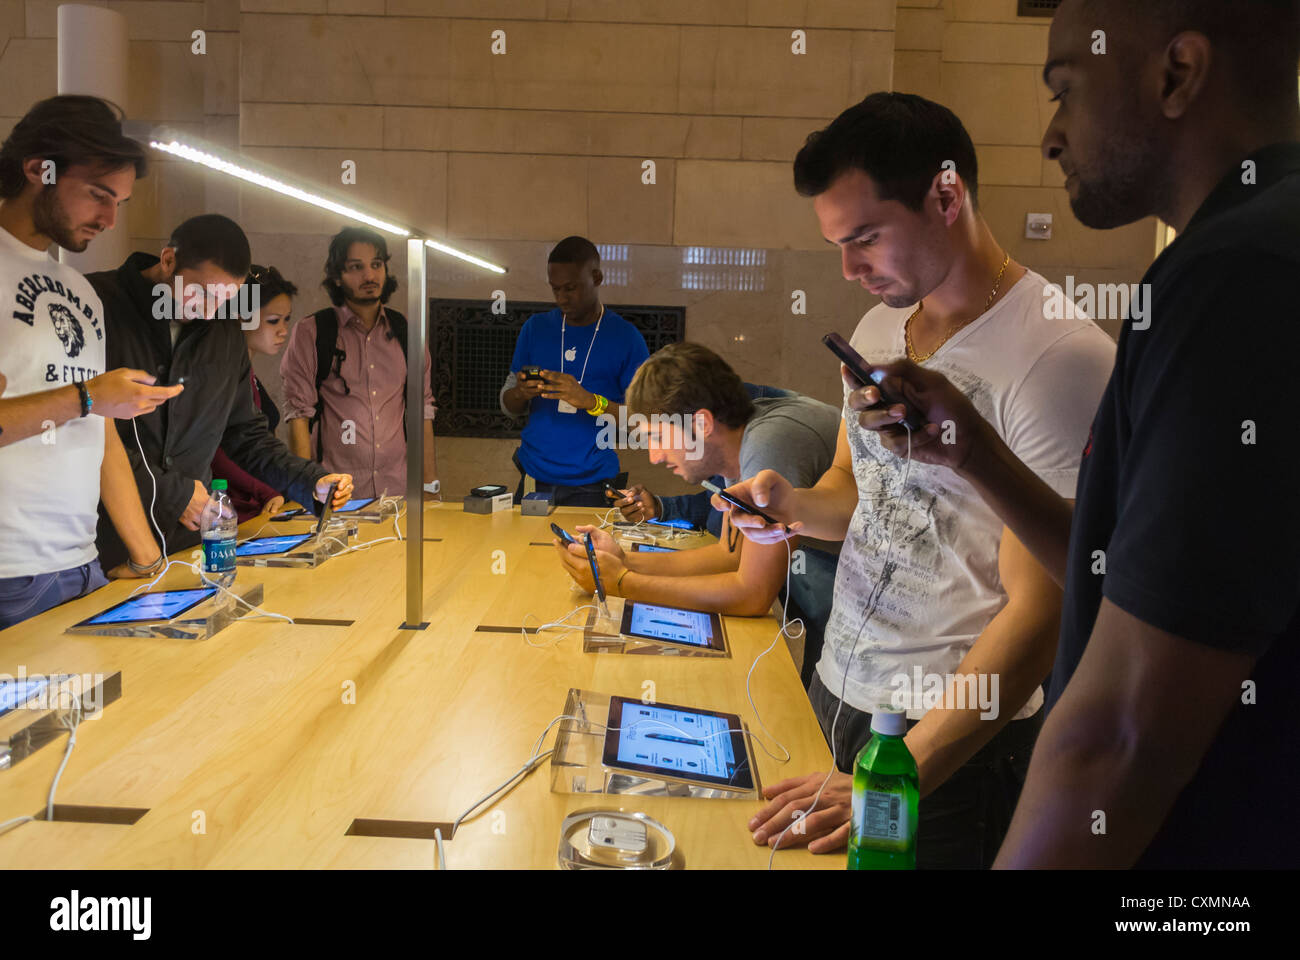 New York, NY, USA, Apple Store, American Teenagers Shopping, Looking at phones, Smart Phone, in Grand Central Building, Stock Photo